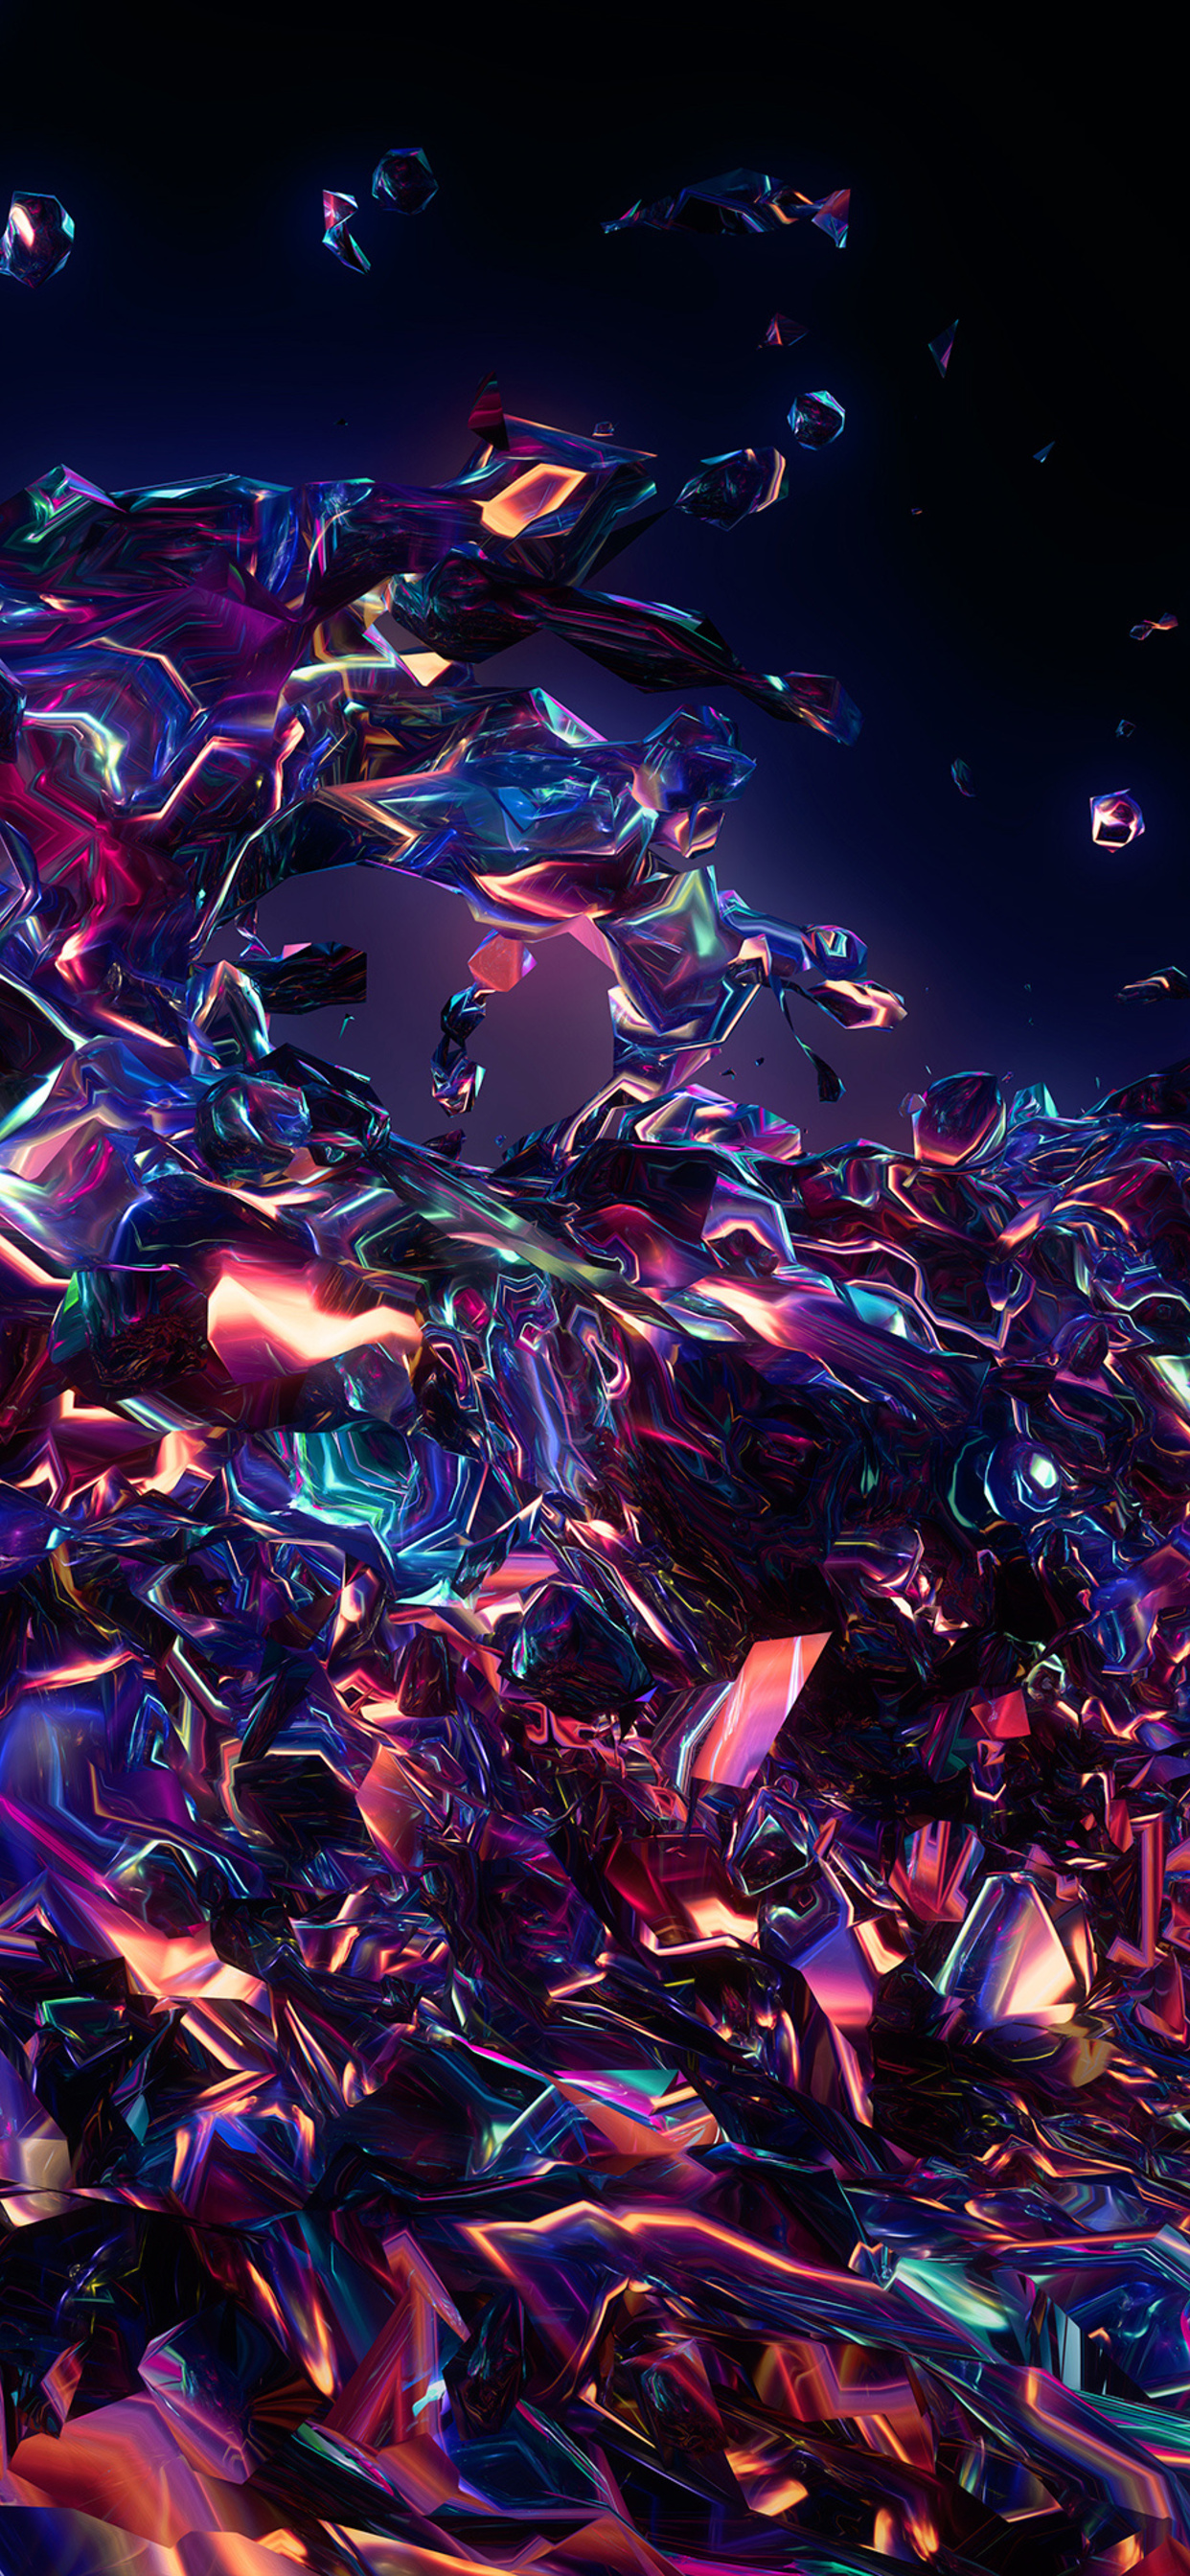 vapor-3d-abstract-9x.jpg